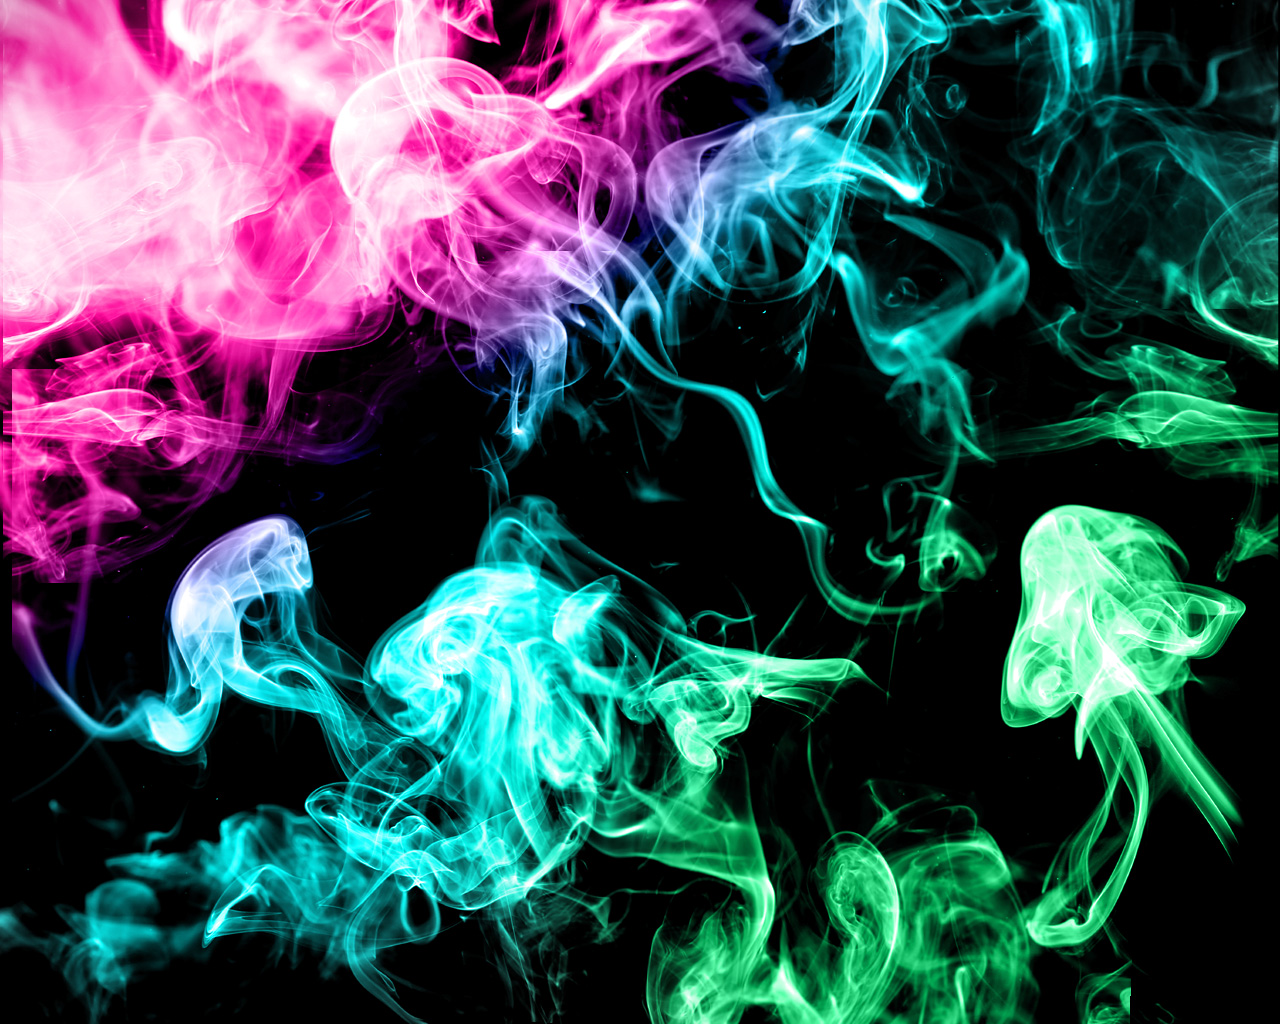 Colorful smoke hd wallpapers - Colorful background hd ...